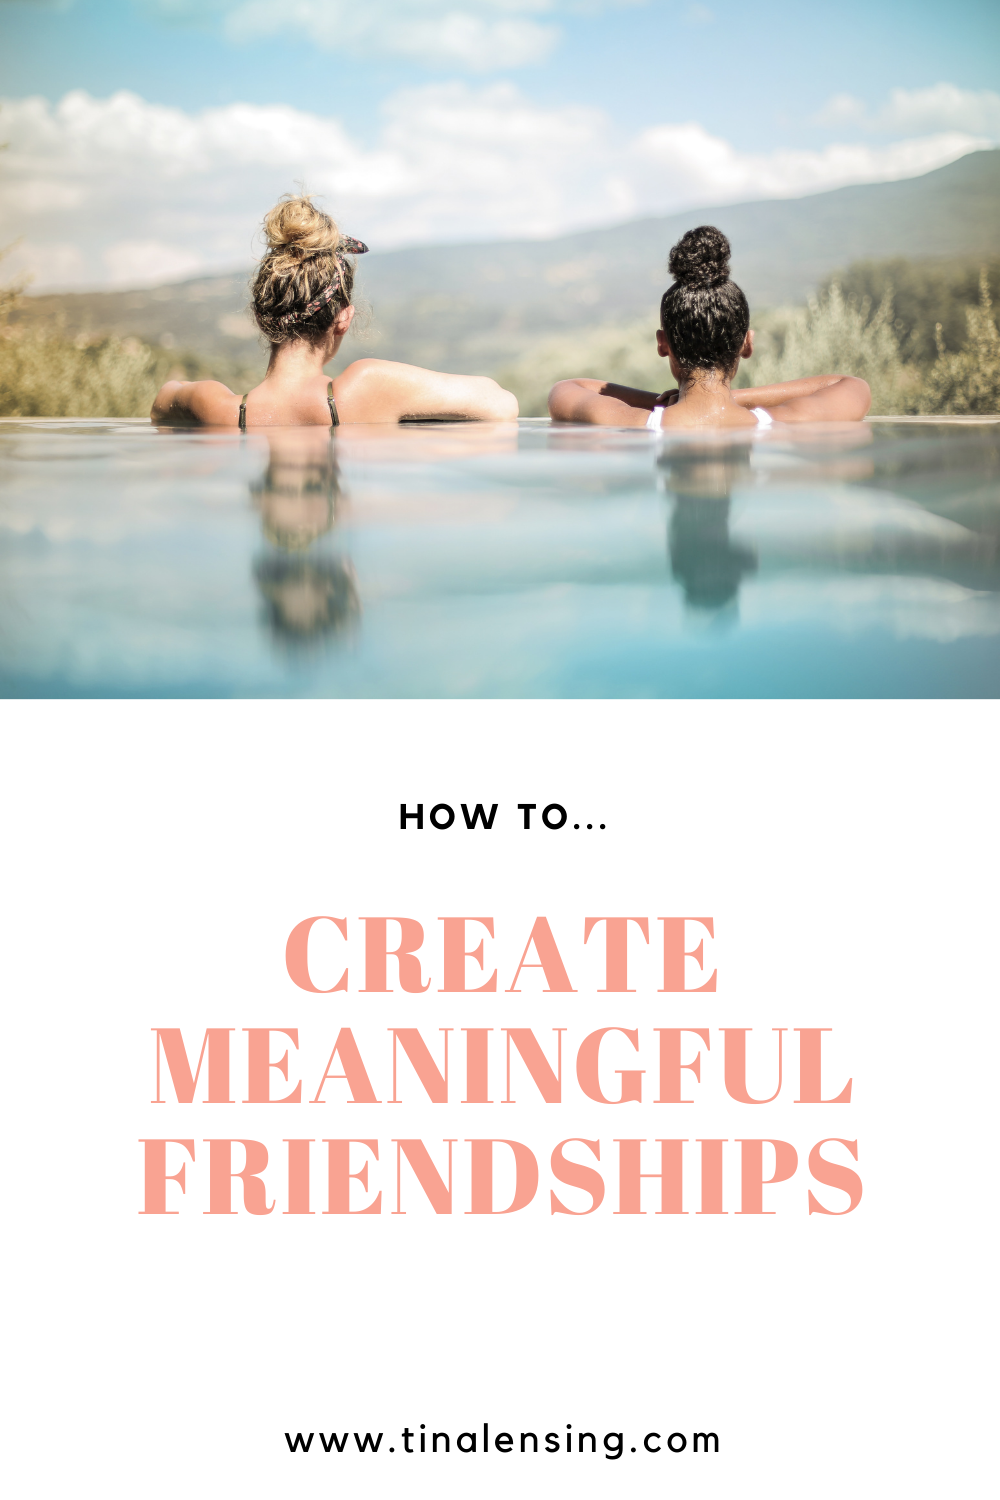 How To Be An Amazing Friend